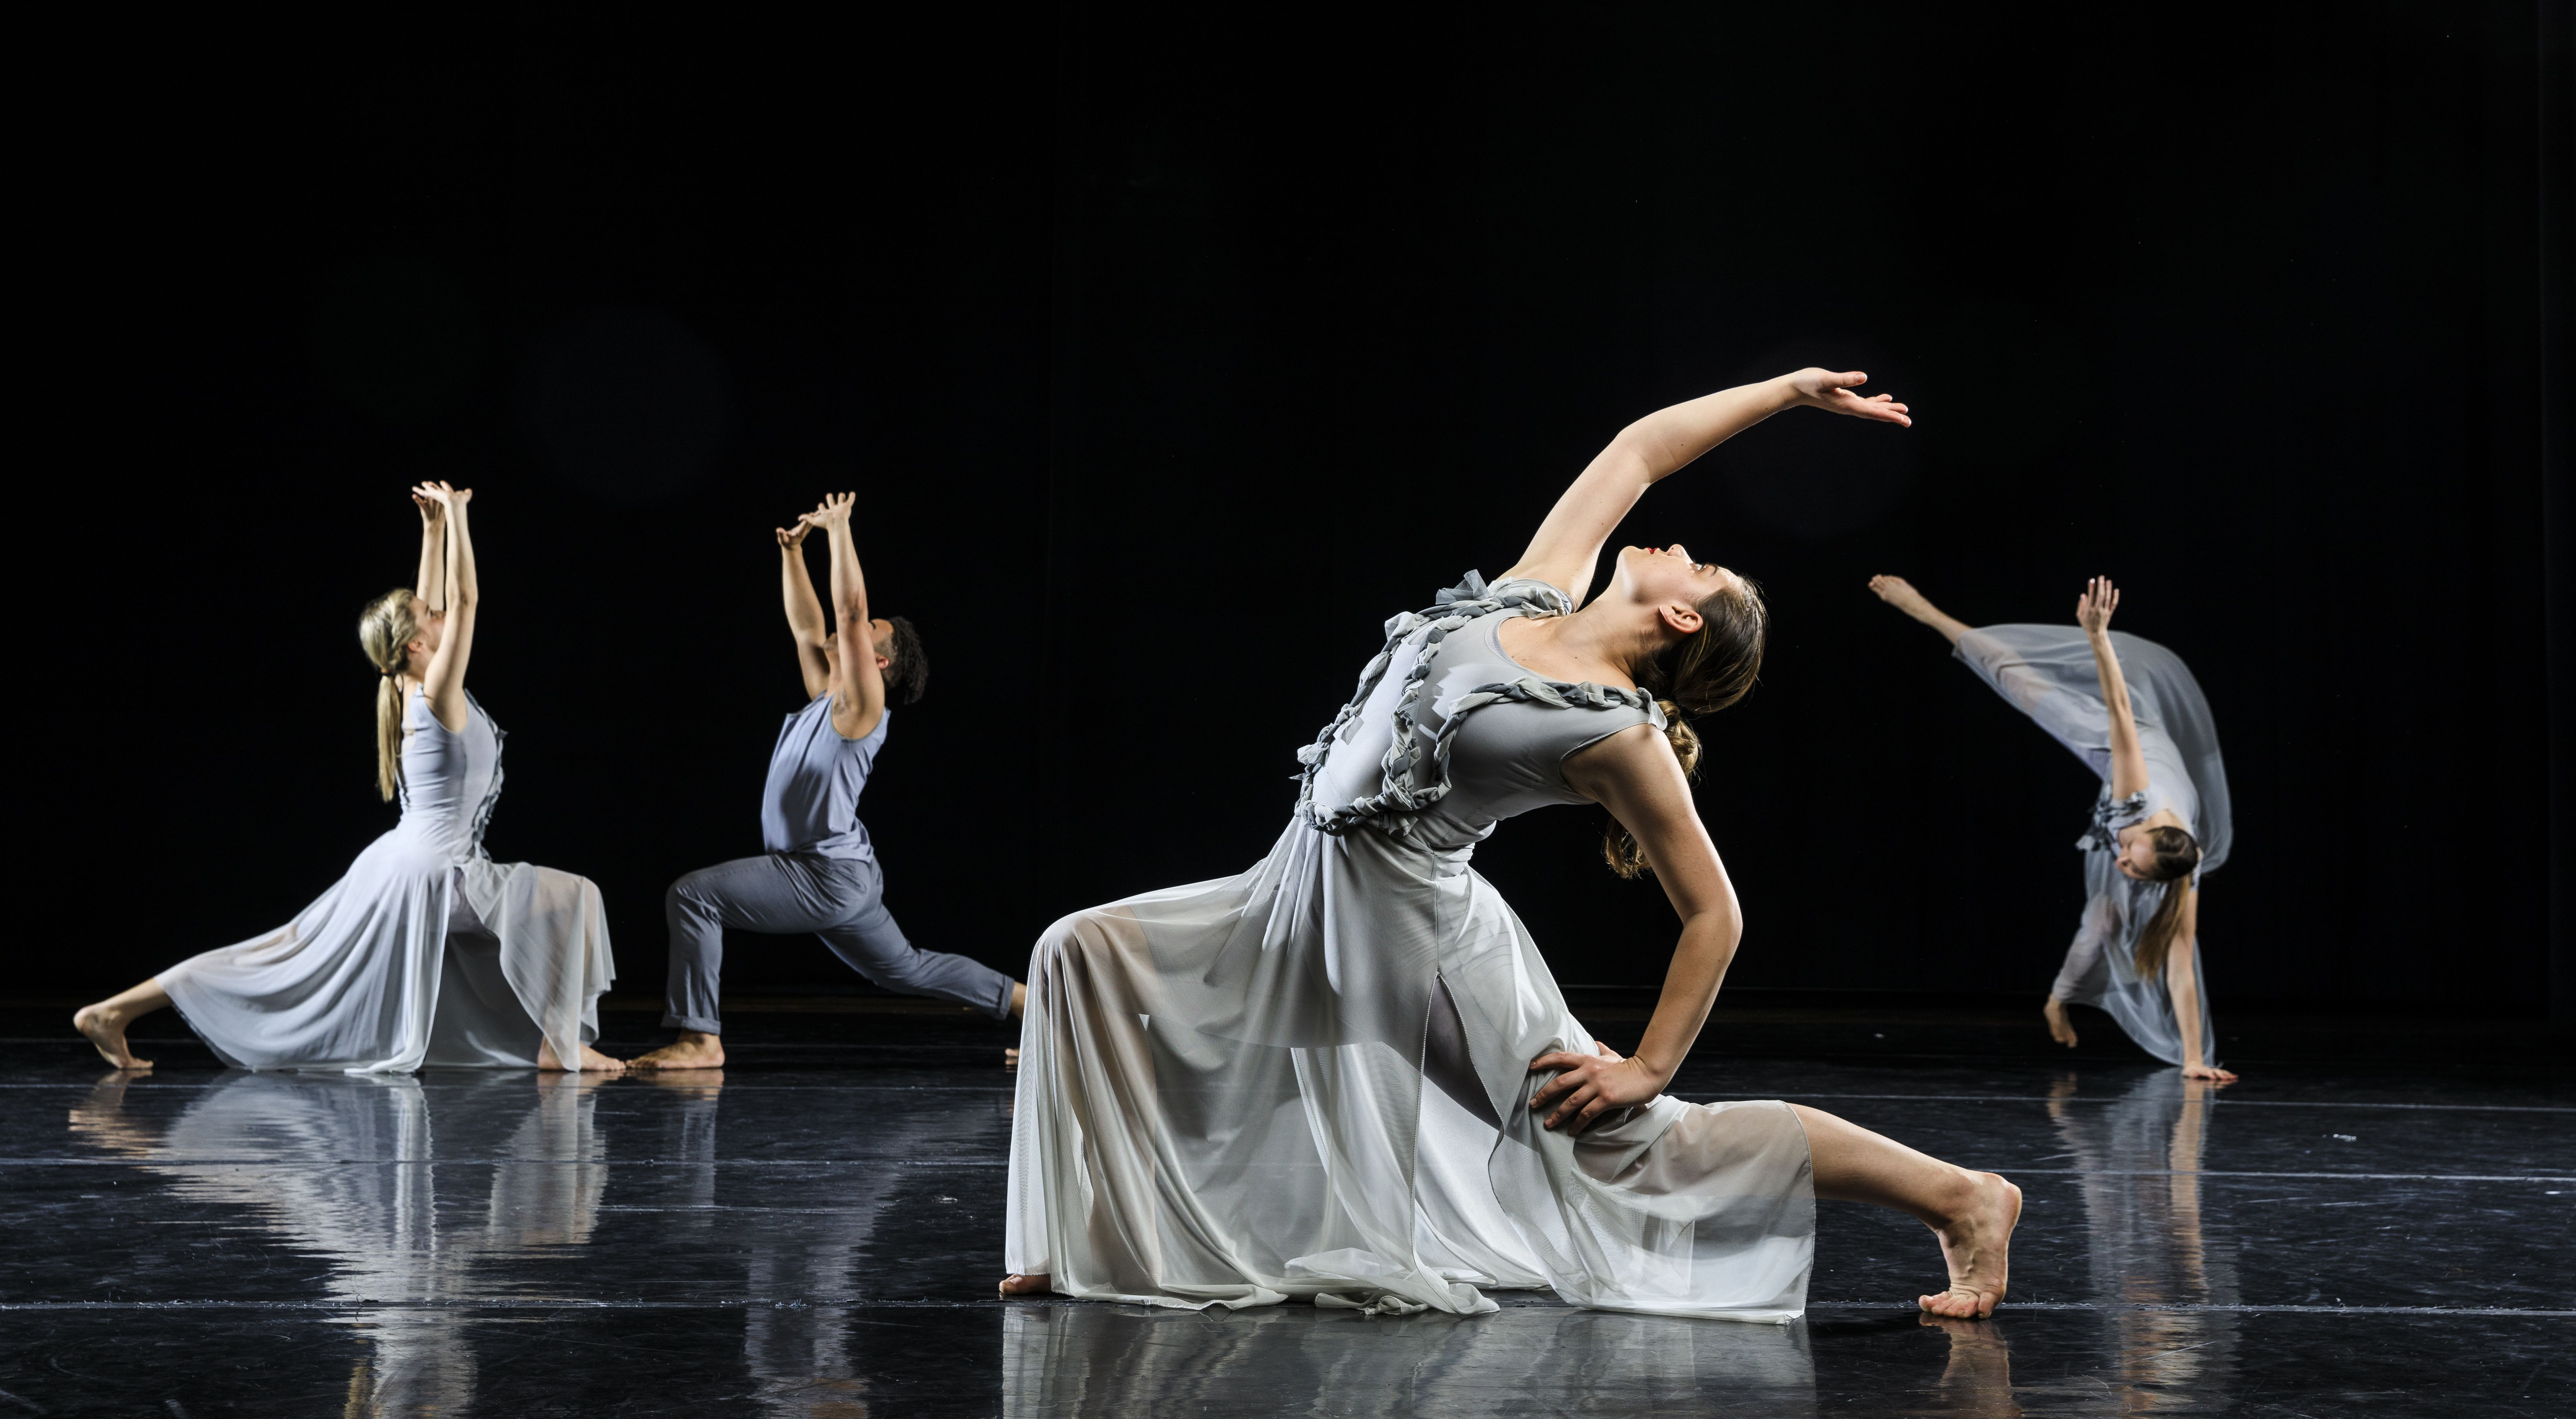 Contemporary Dance Theatre Byu Performing Arts Management Performance Art Contemporary Dance Arts Management